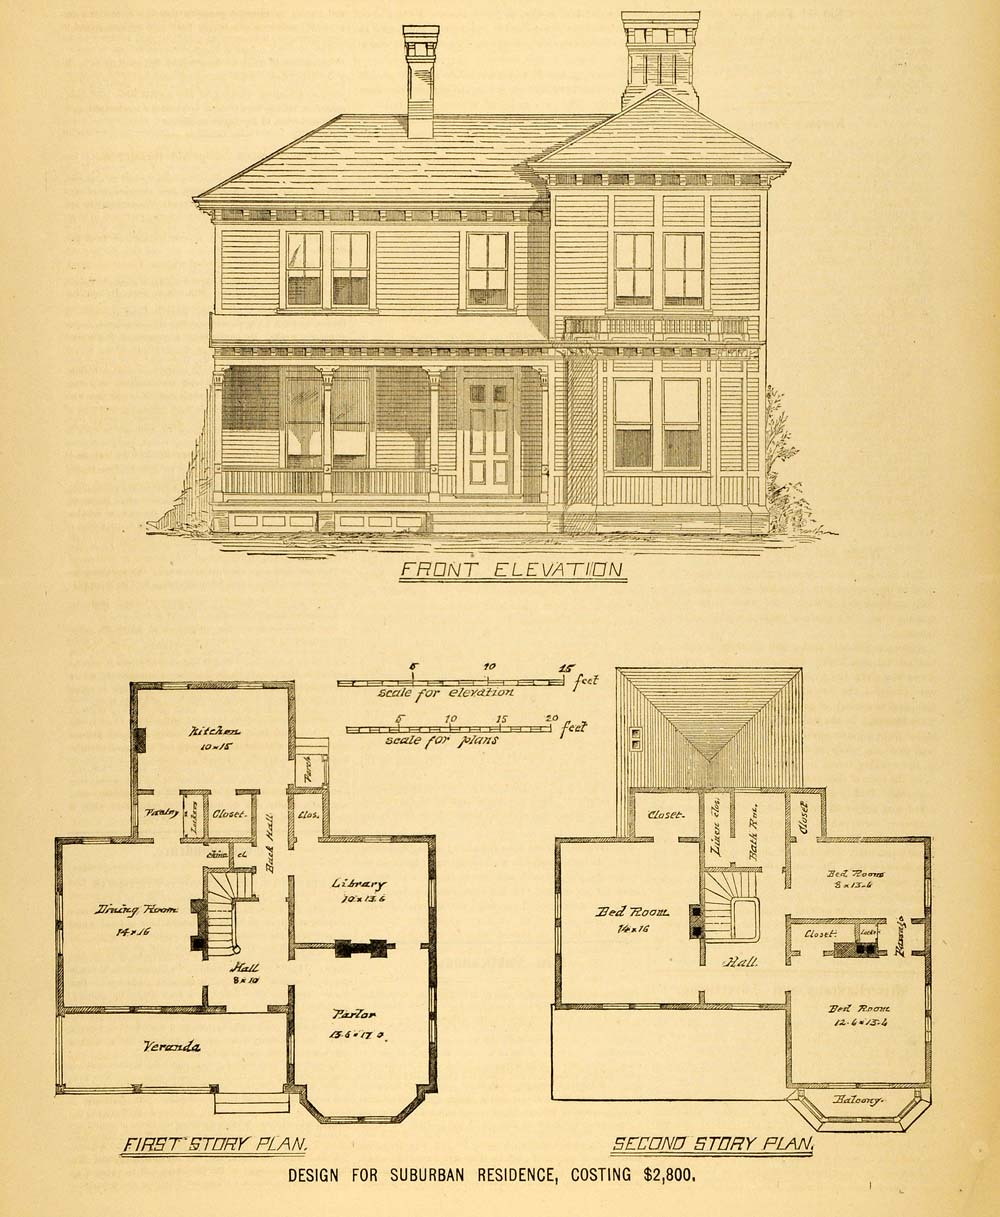 1878 print house architectural design floor plans for Architectural home plans